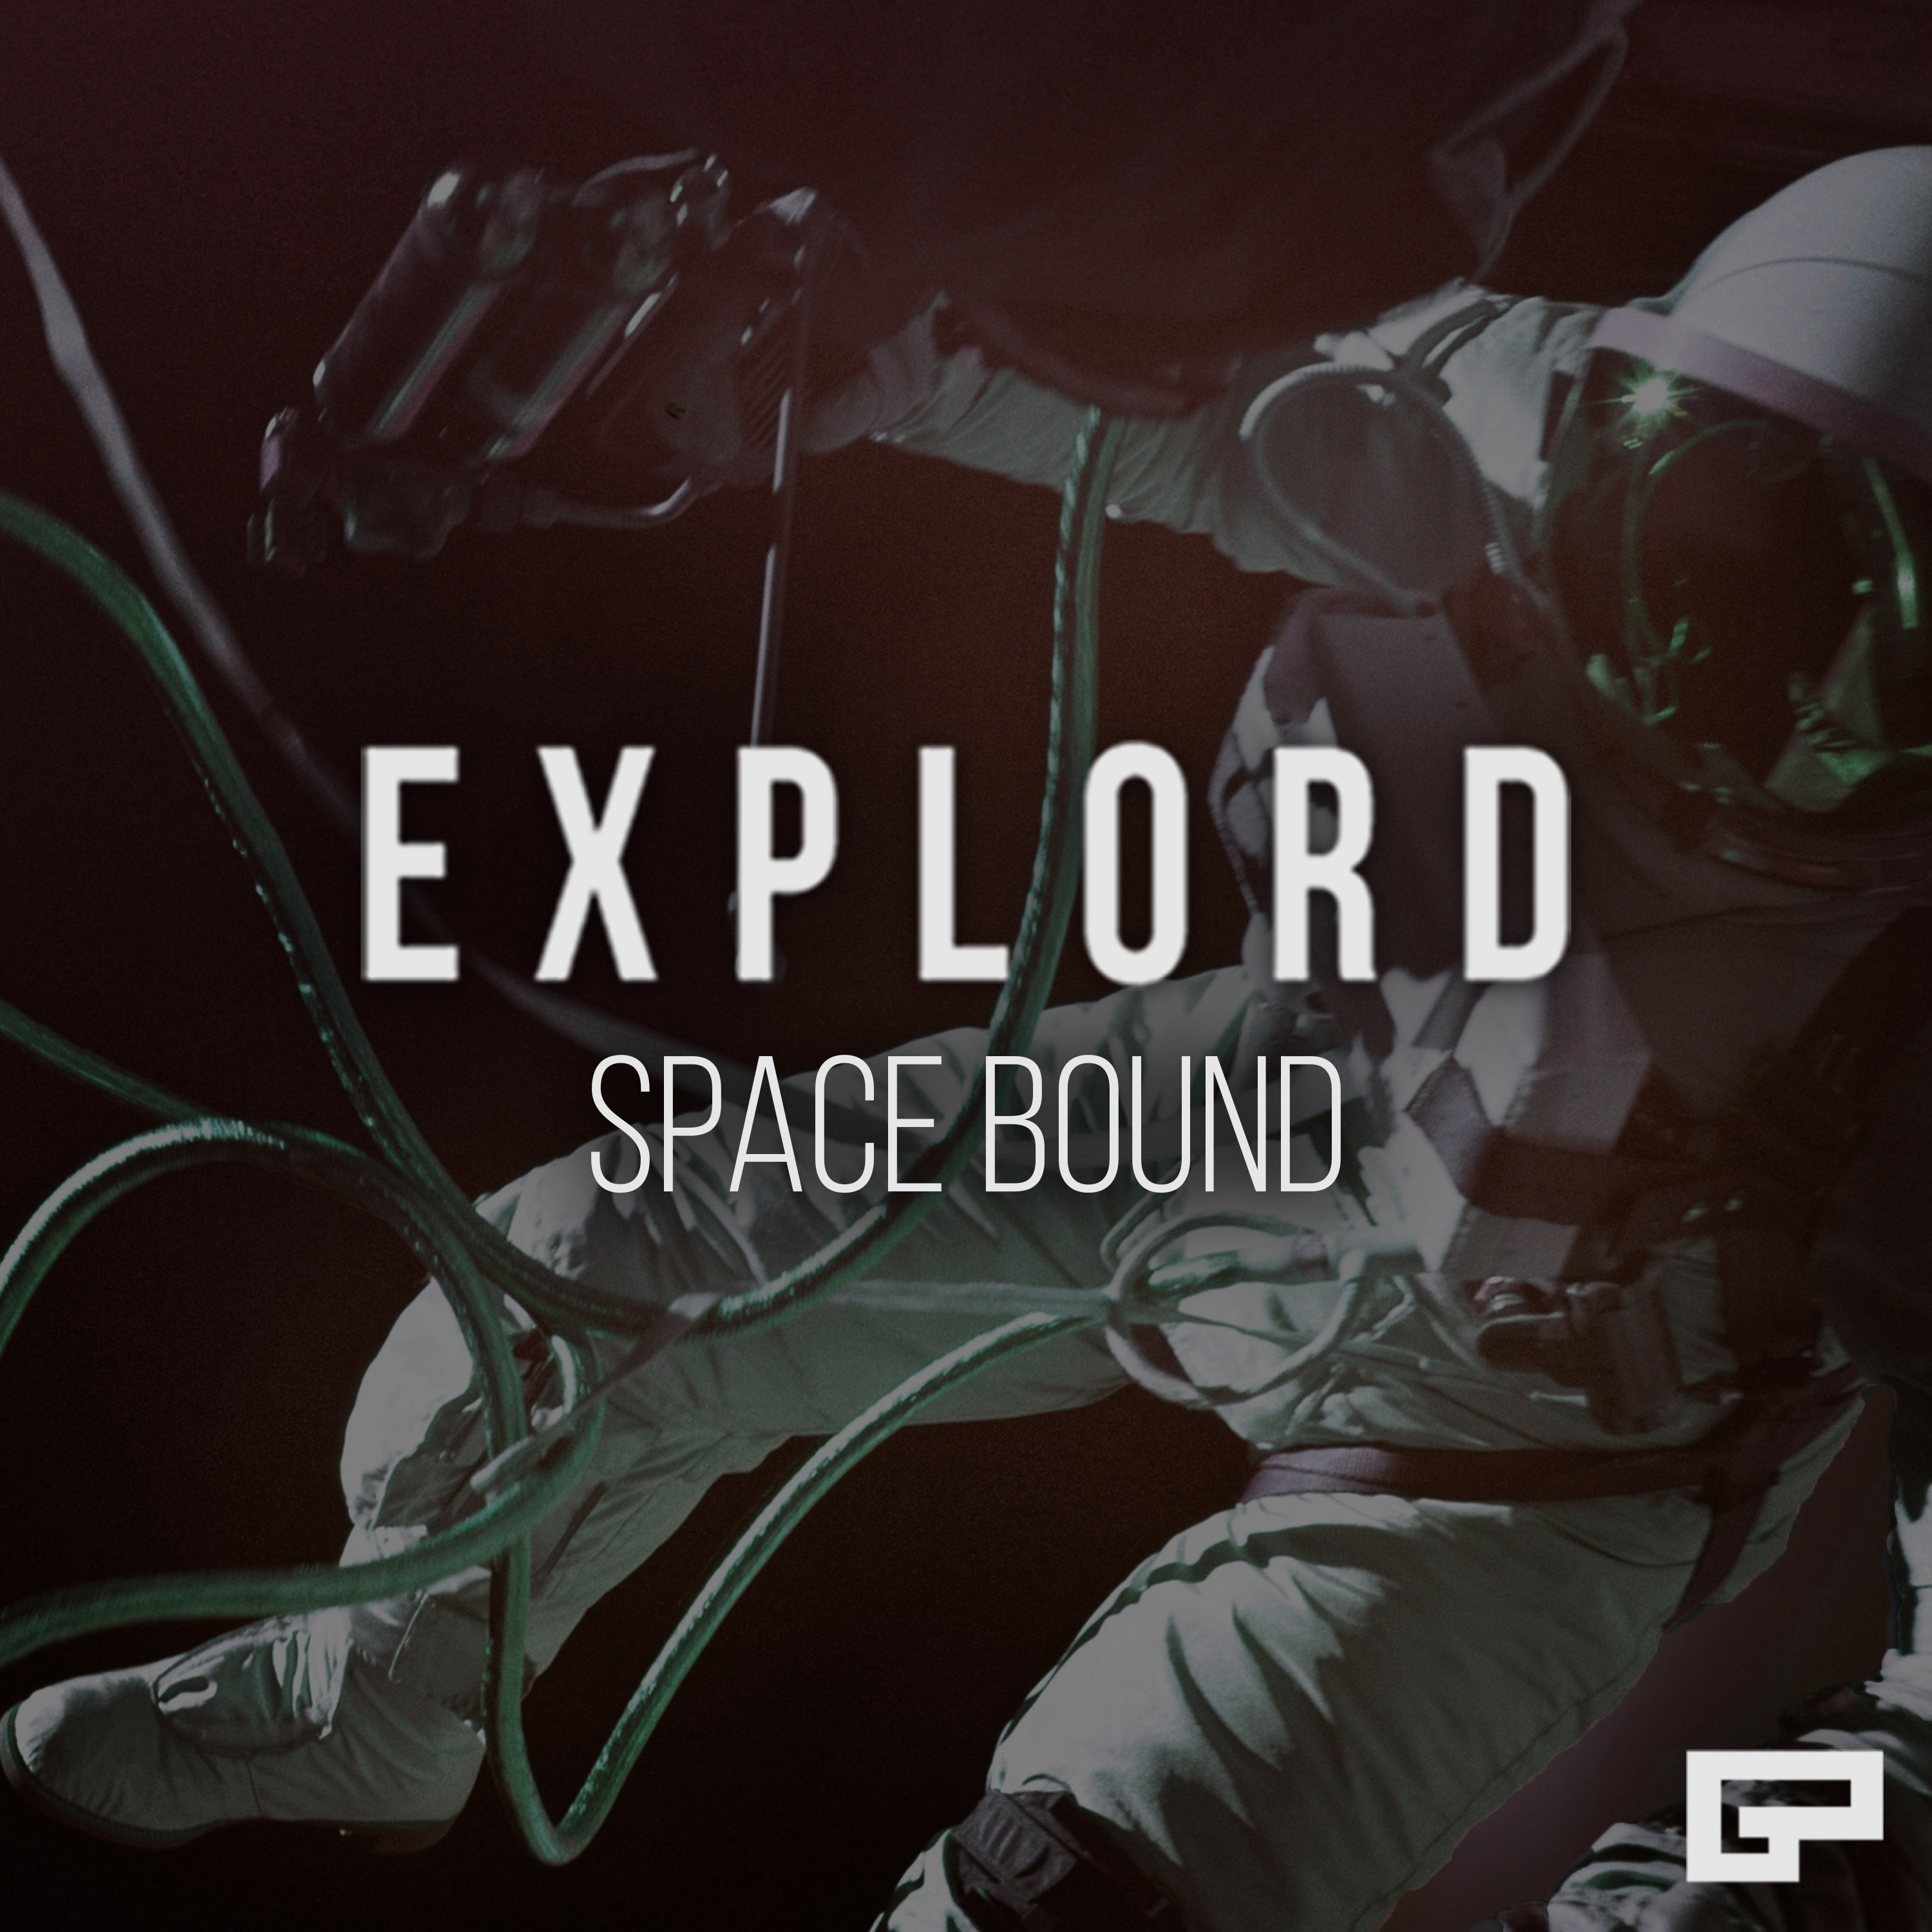 Space Bound EP by Explord Image